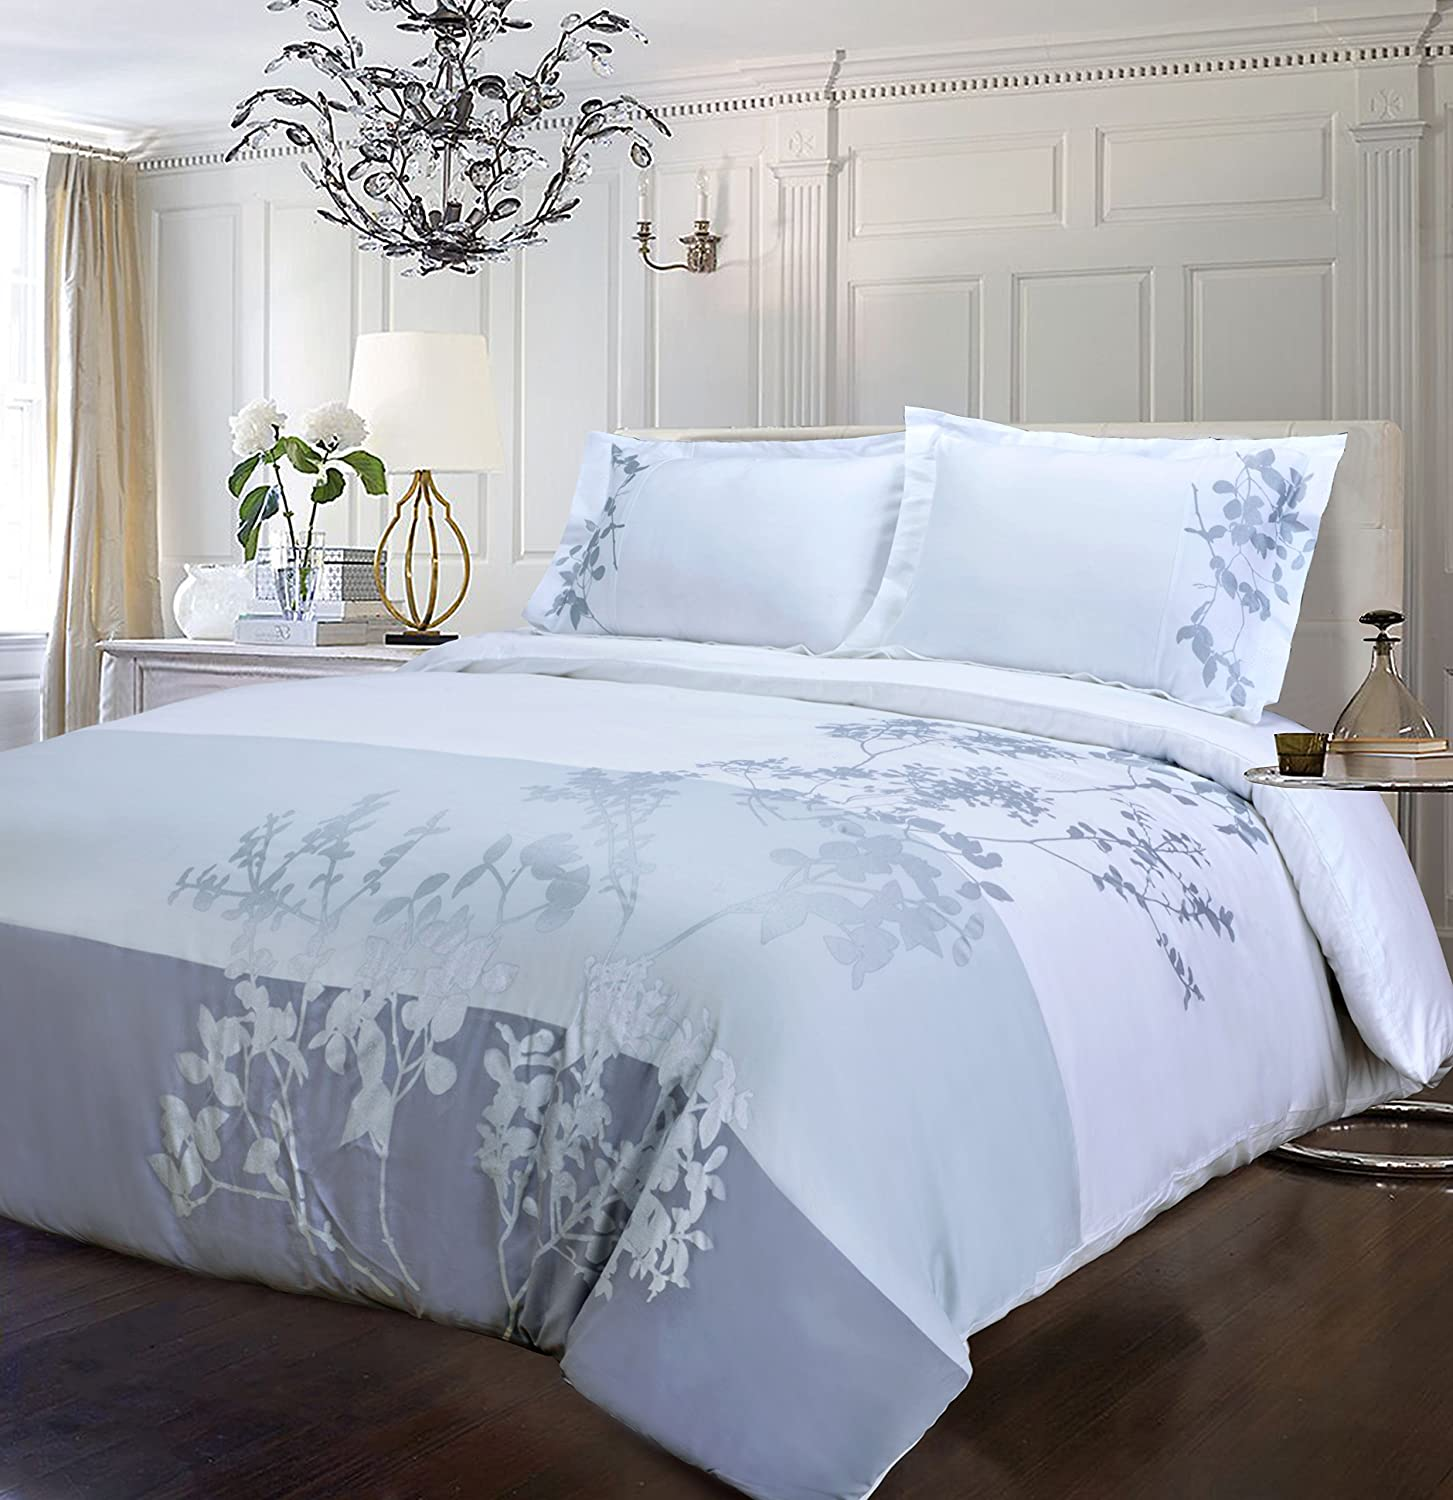 Sydney Full Queen 100% Cotton, 3-Piece Full Queen Single Ply, Soft, Embroidered Elmwood Duvet Cover Set